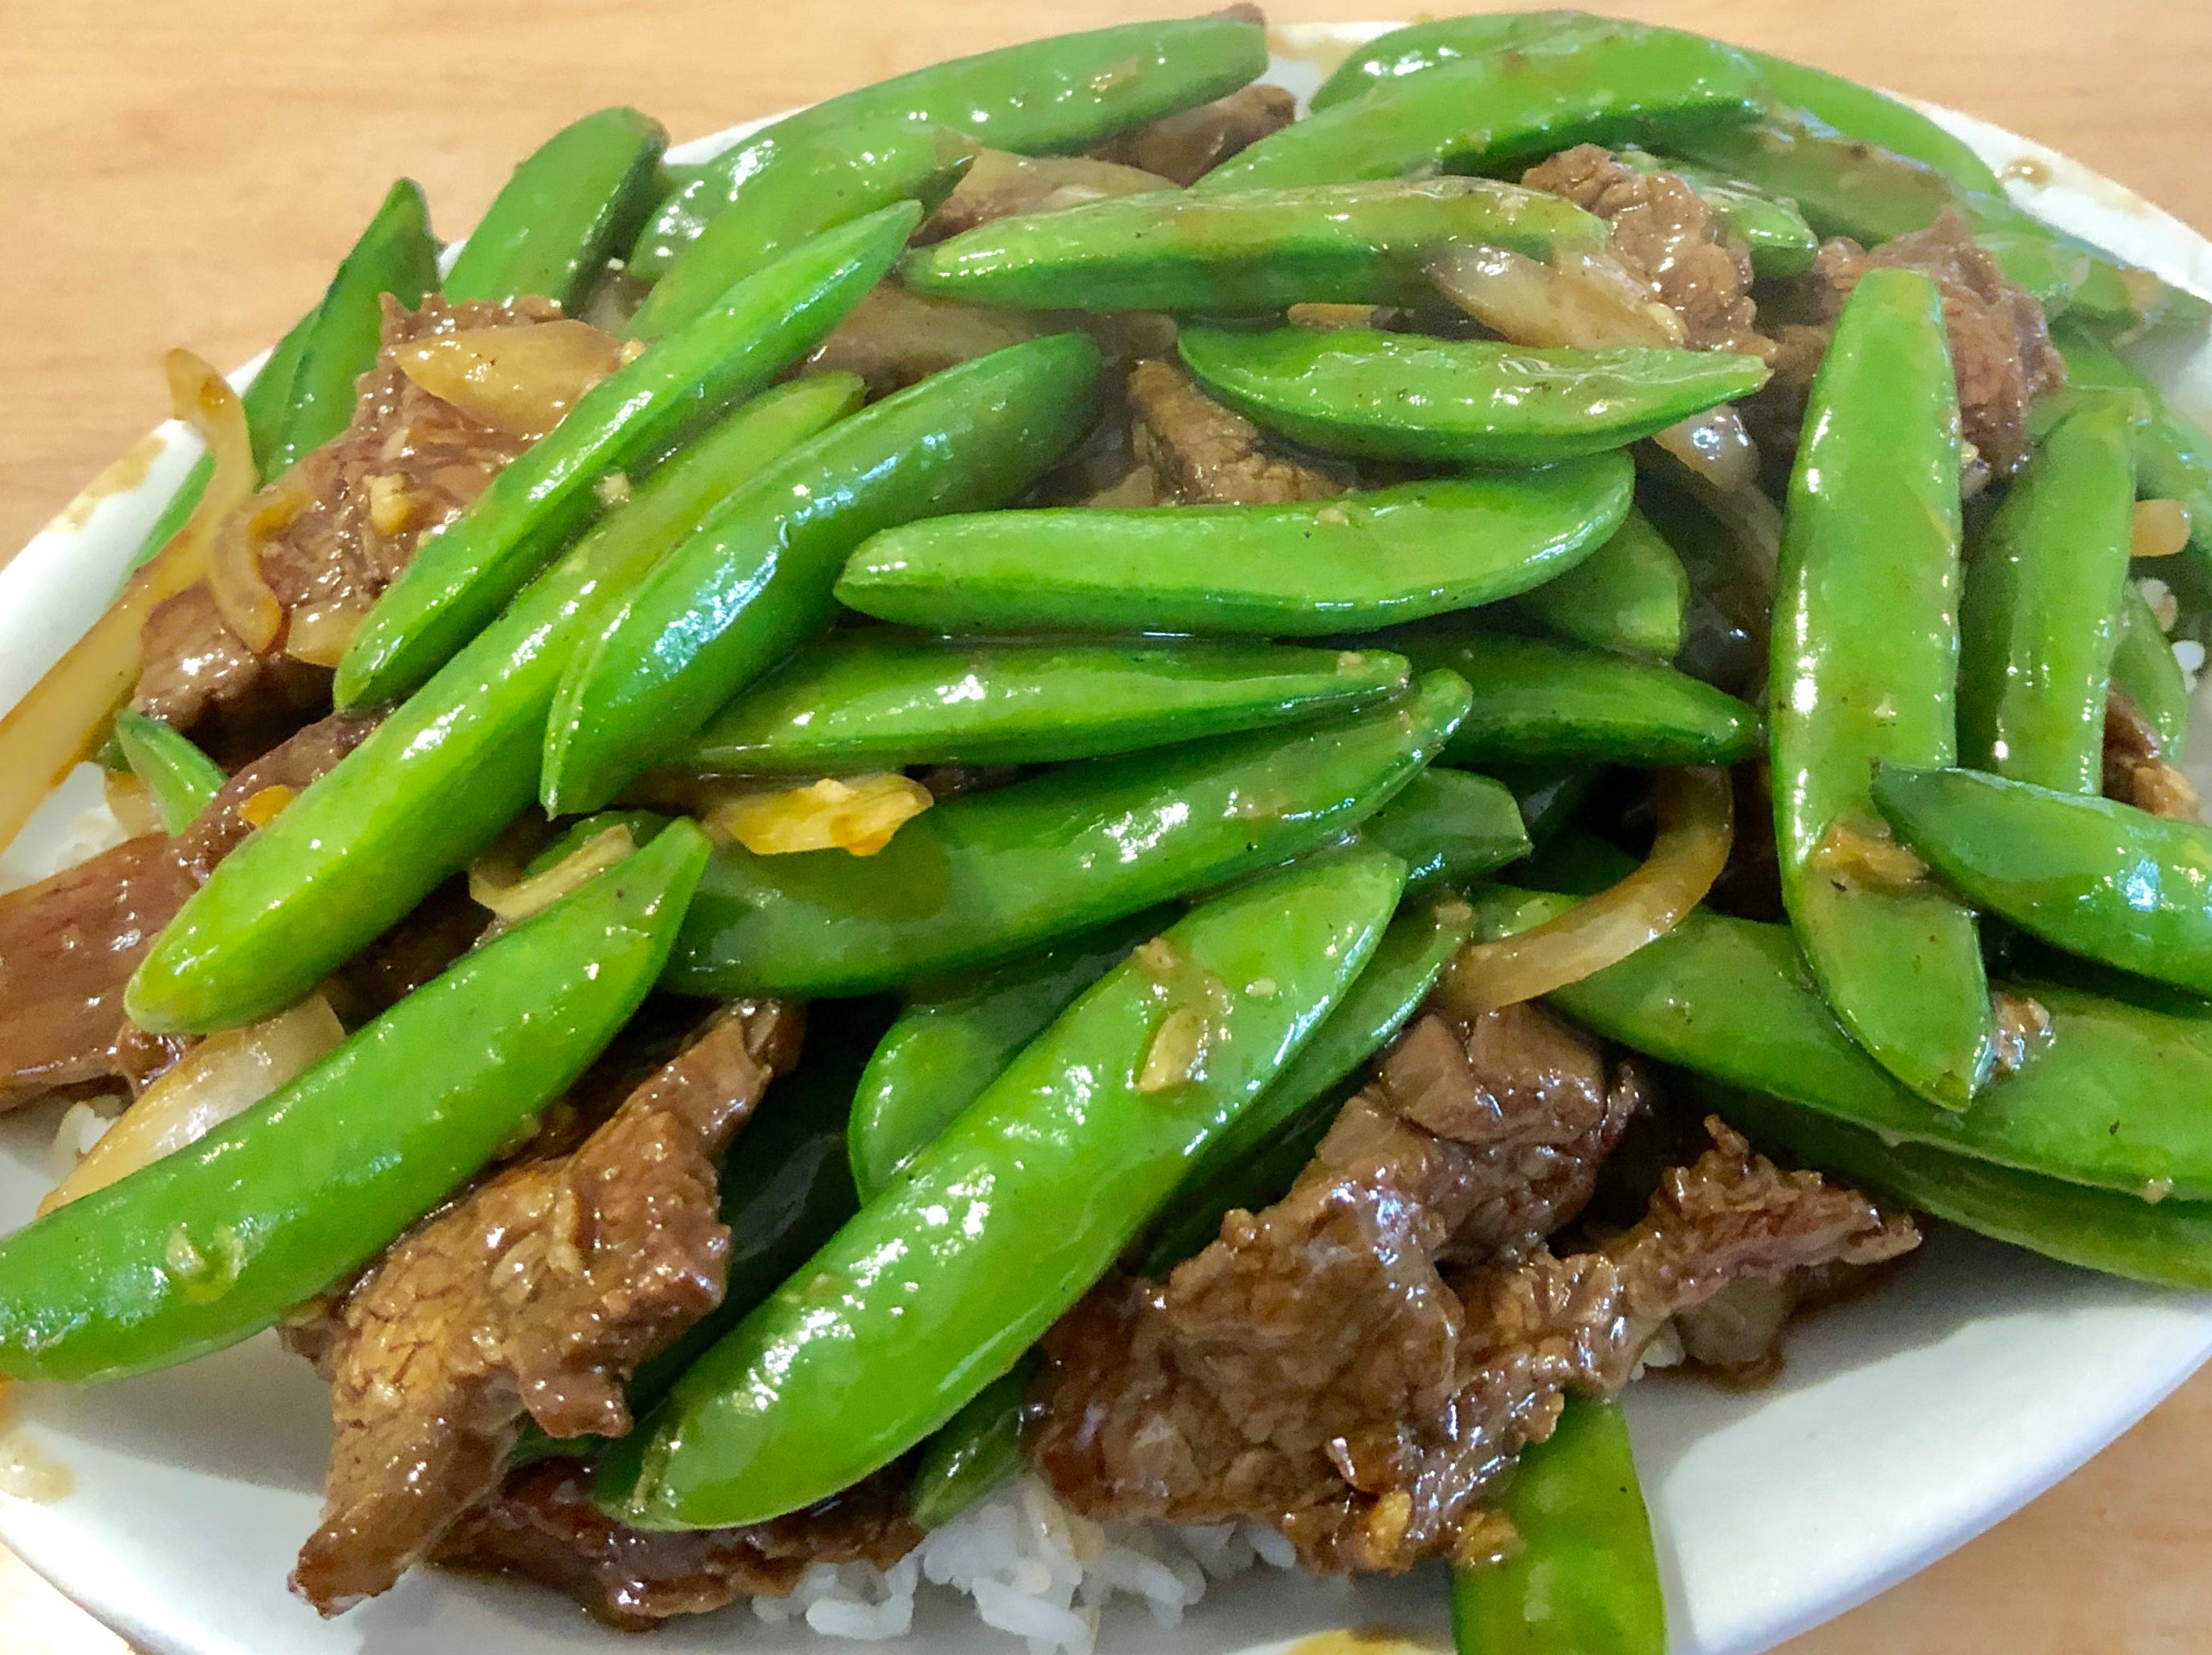 Sugar snap peas with beef over rice at Lim's.